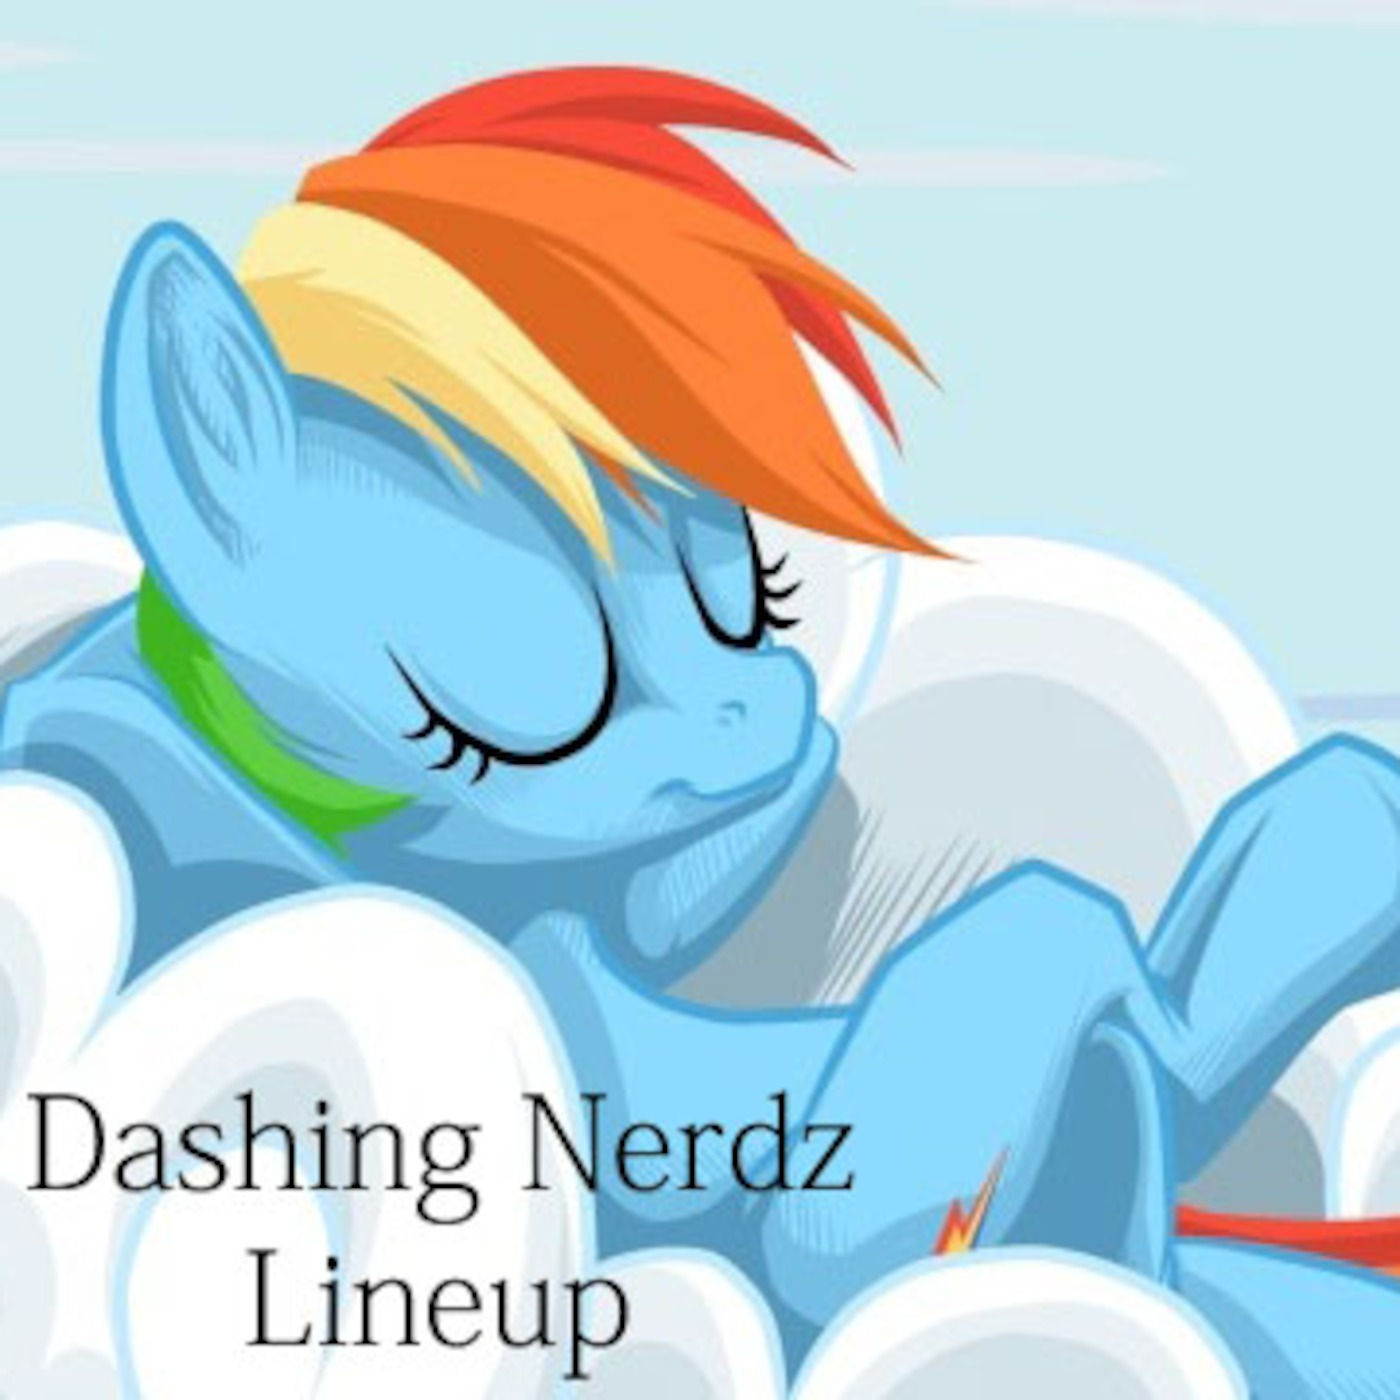 Dashing Nerdz Lineup 3.0